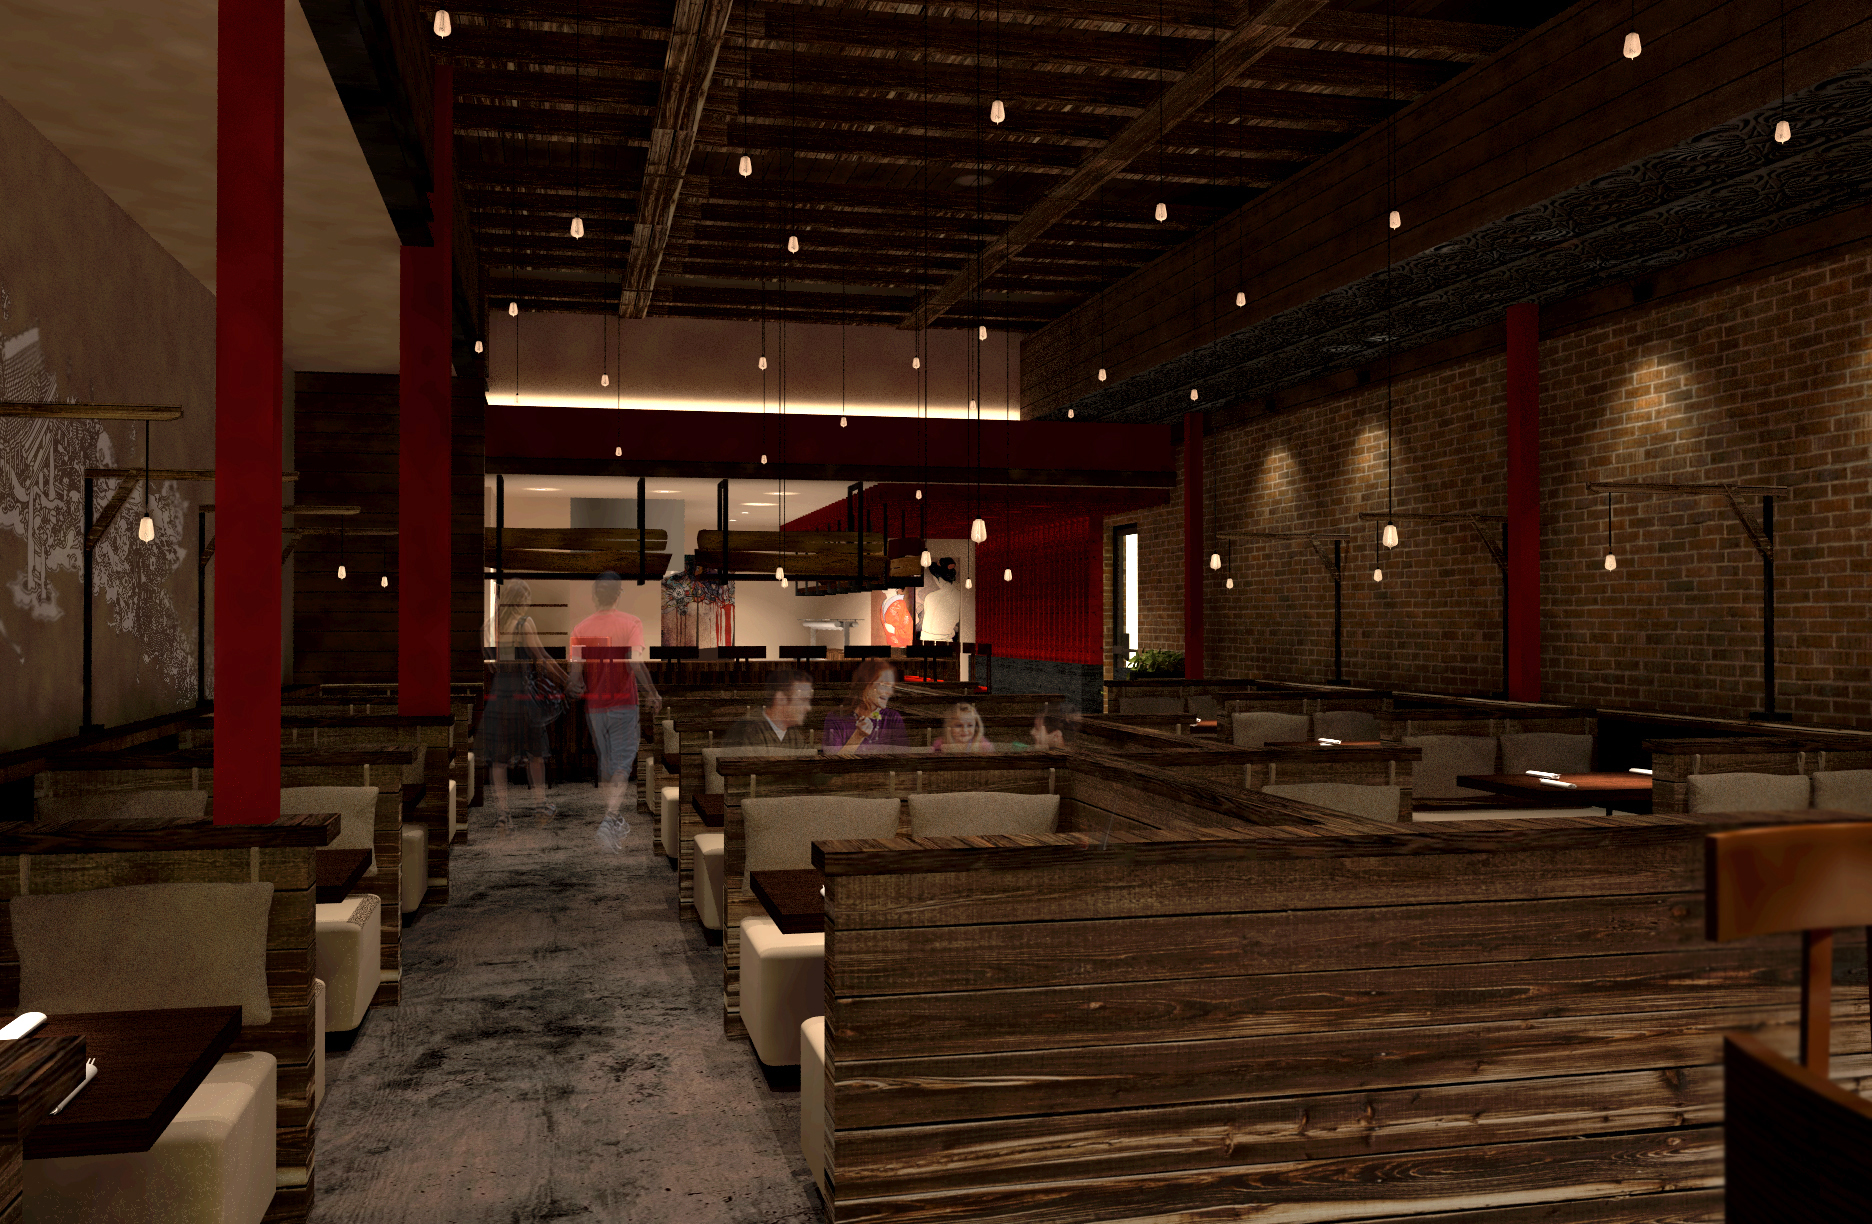 A rendering of the Wabi House interior.